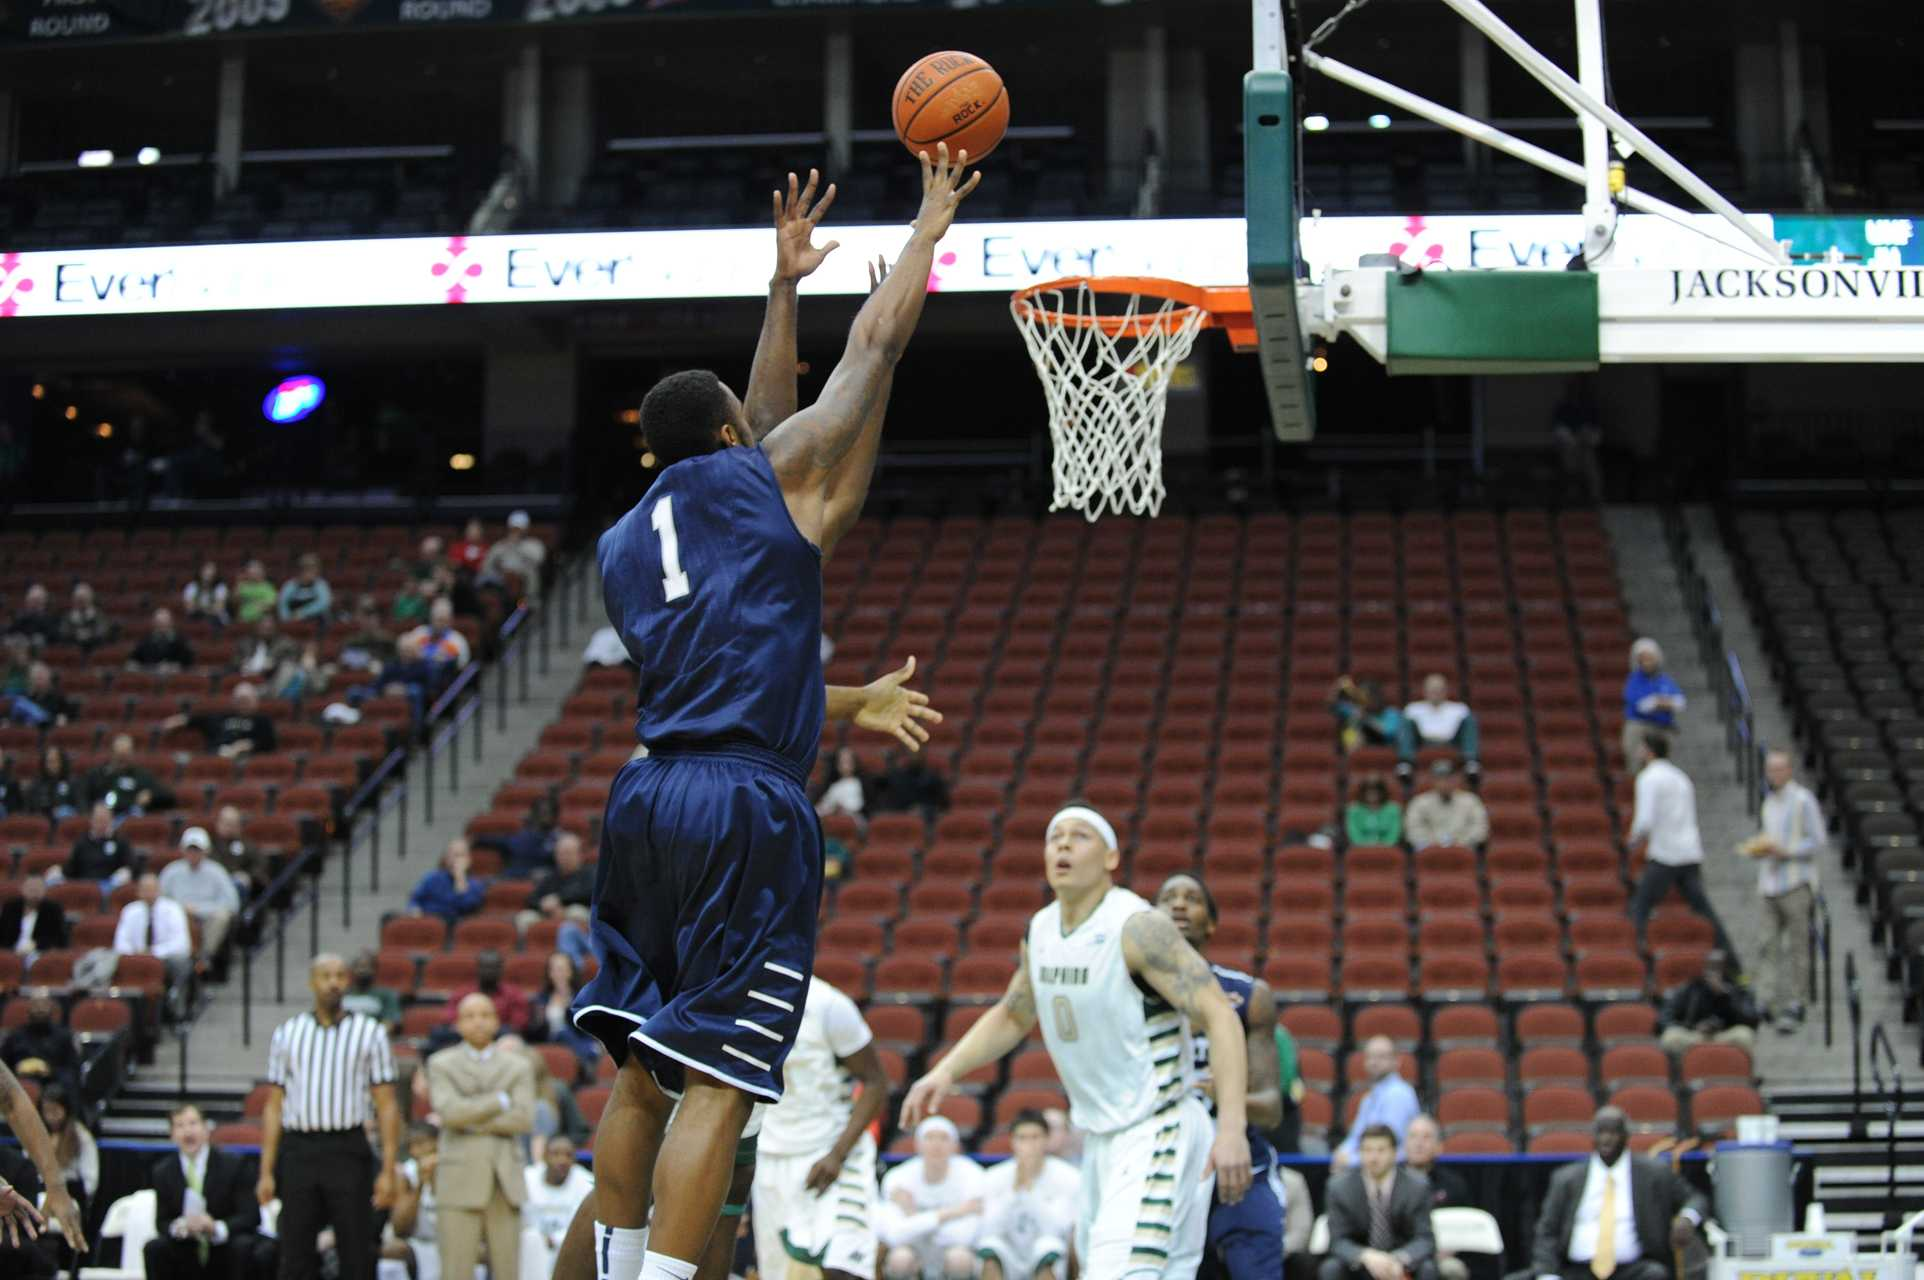 Travis Wallace attempts a layup in a previous game against JU.  Wallace finished iwth 18 points in the upset vs Mercer. Photo by John Shippee